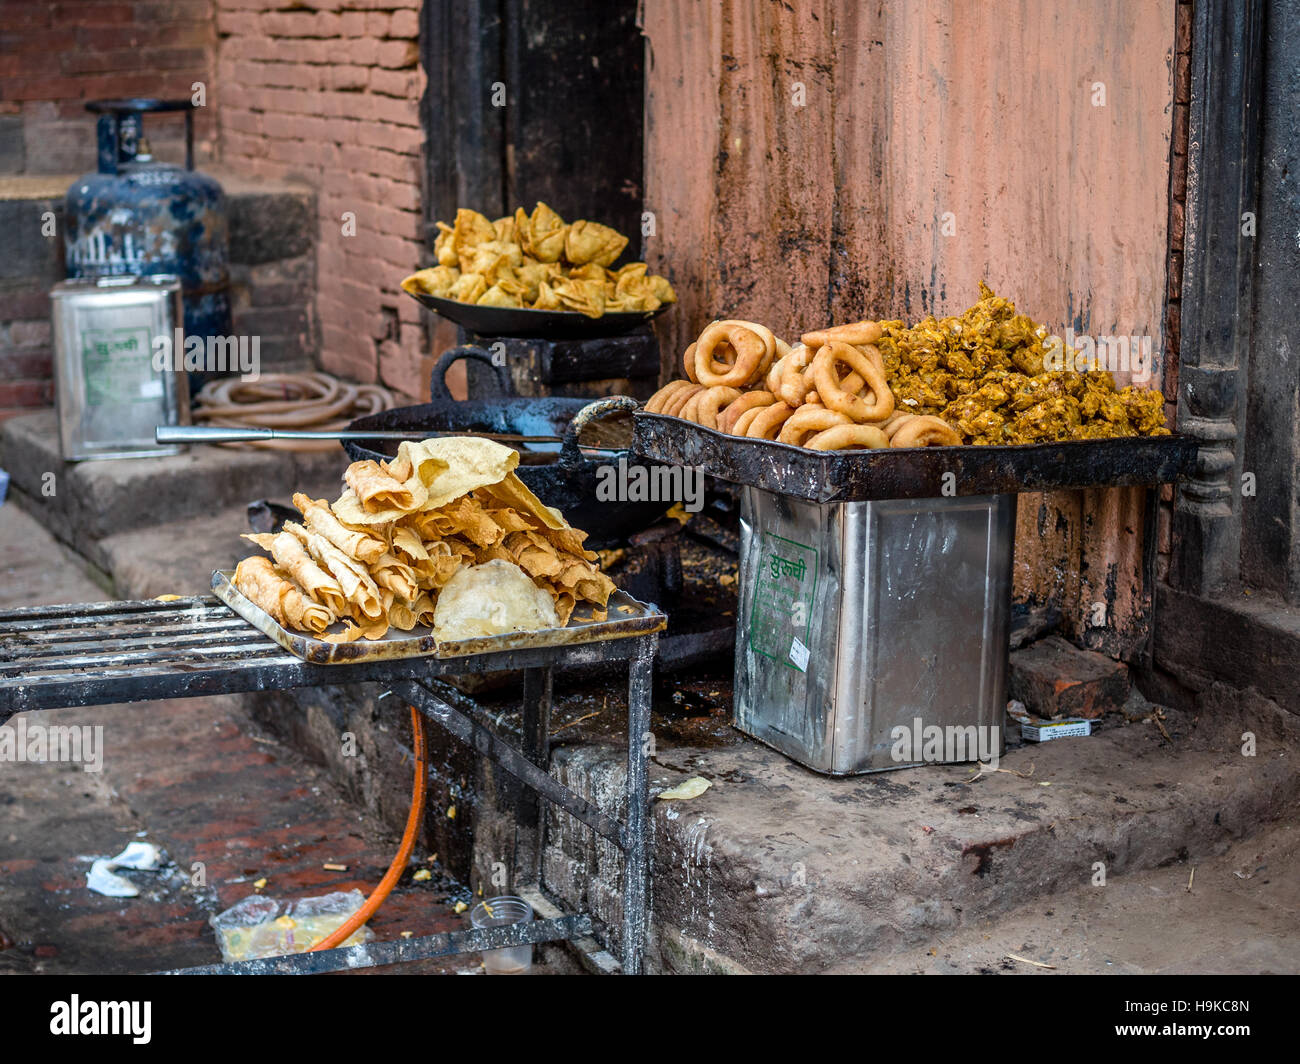 Nepali fried food for sale on the street - Stock Image